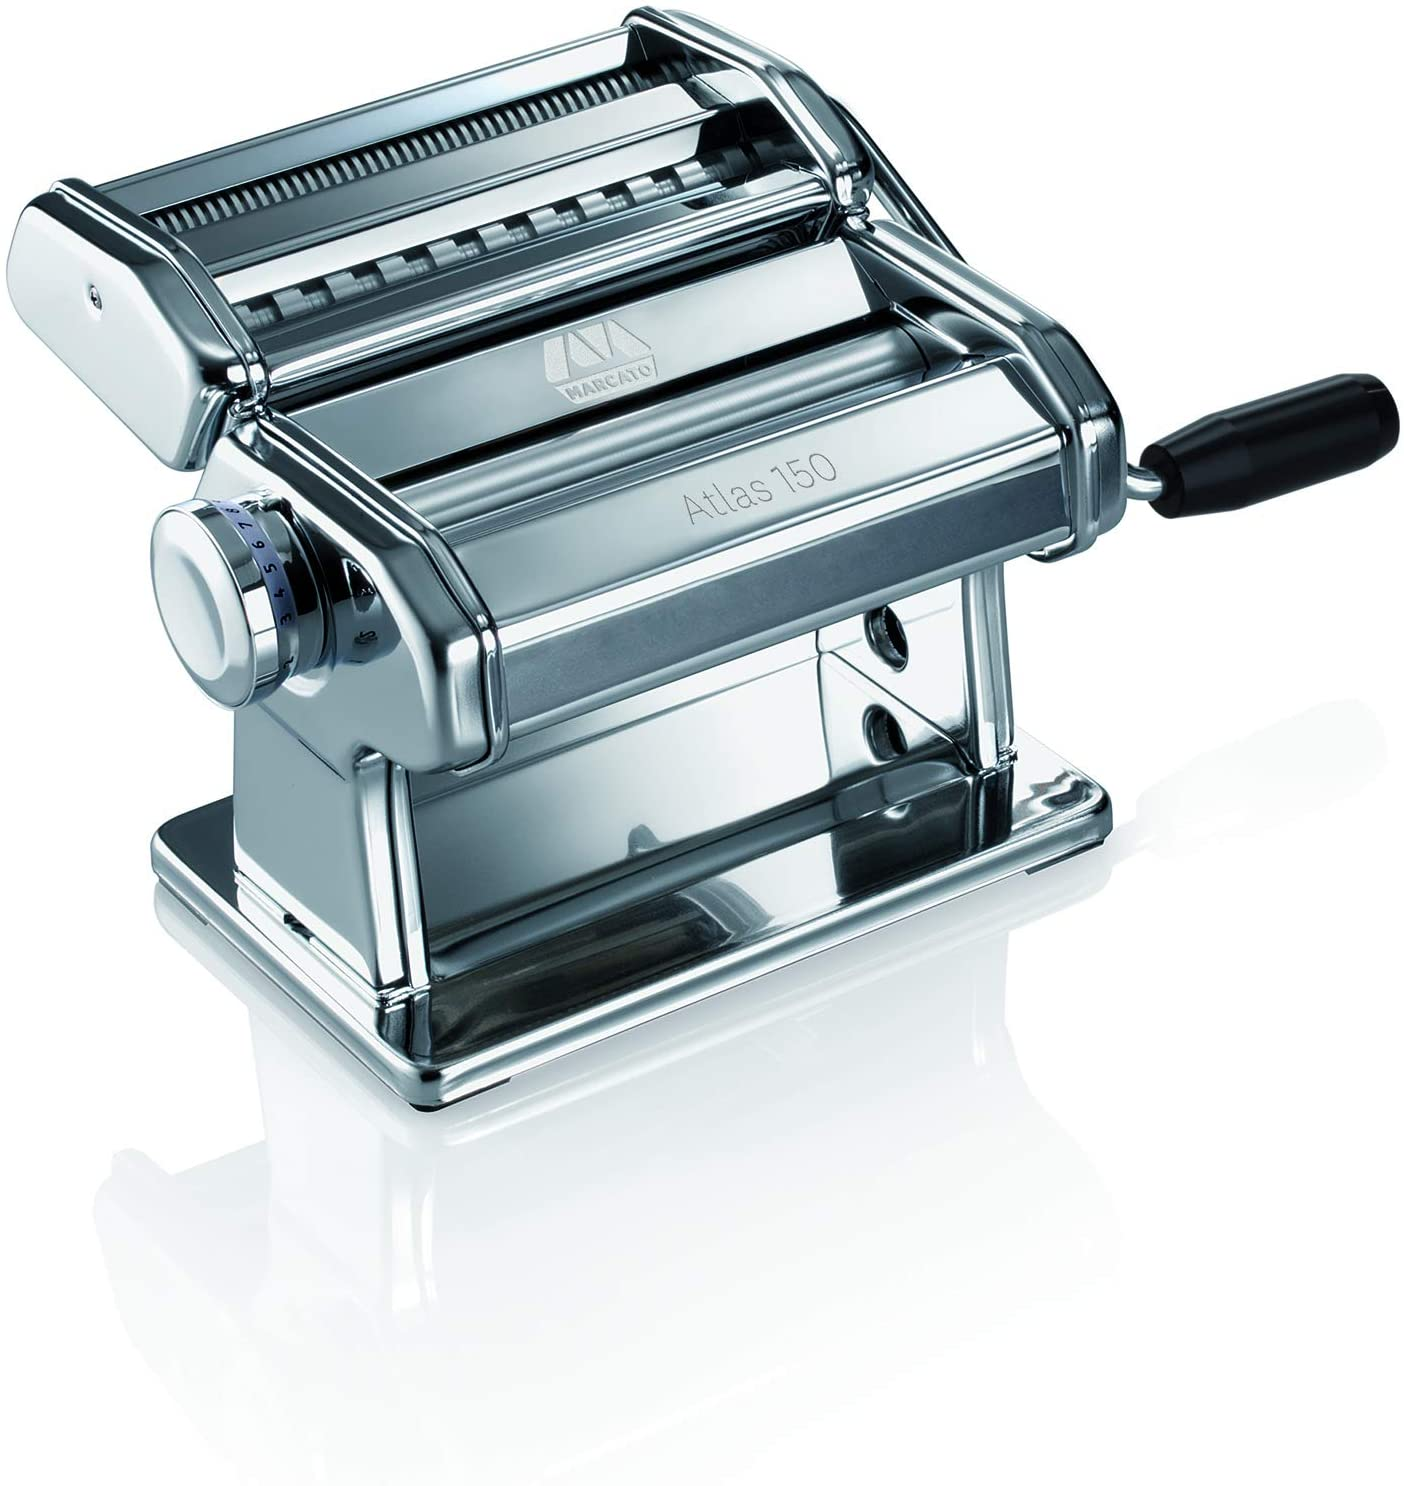 Stainless steel Pasta Maker on white background